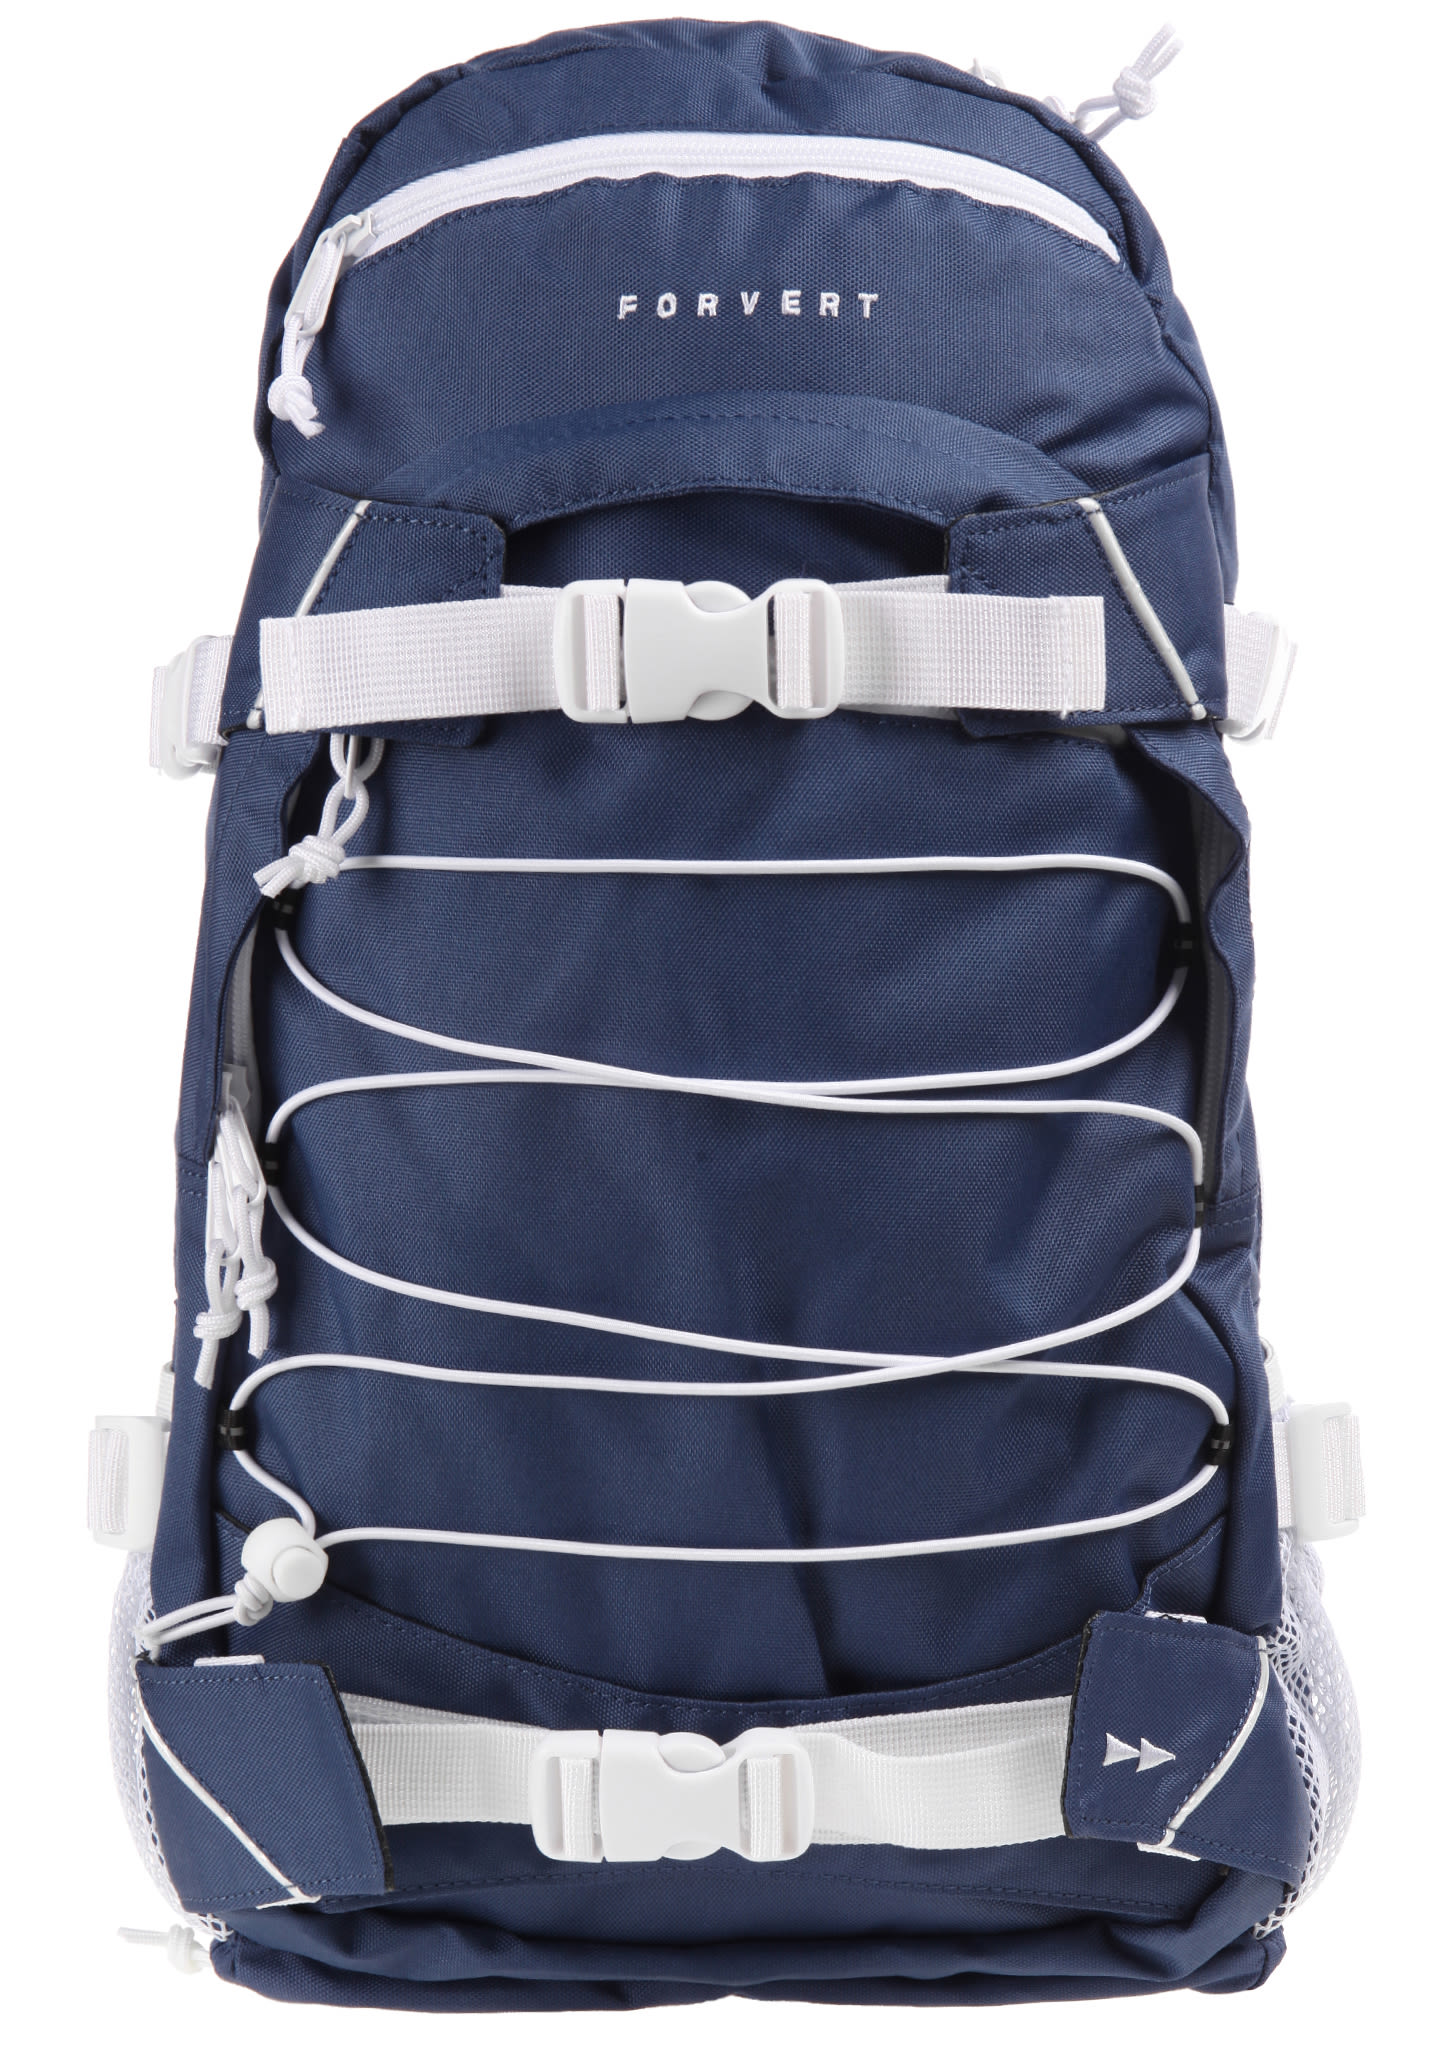 a46449addfee7 FORVERT Ice Louis 20L - Rucksack - Blau - Planet Sports